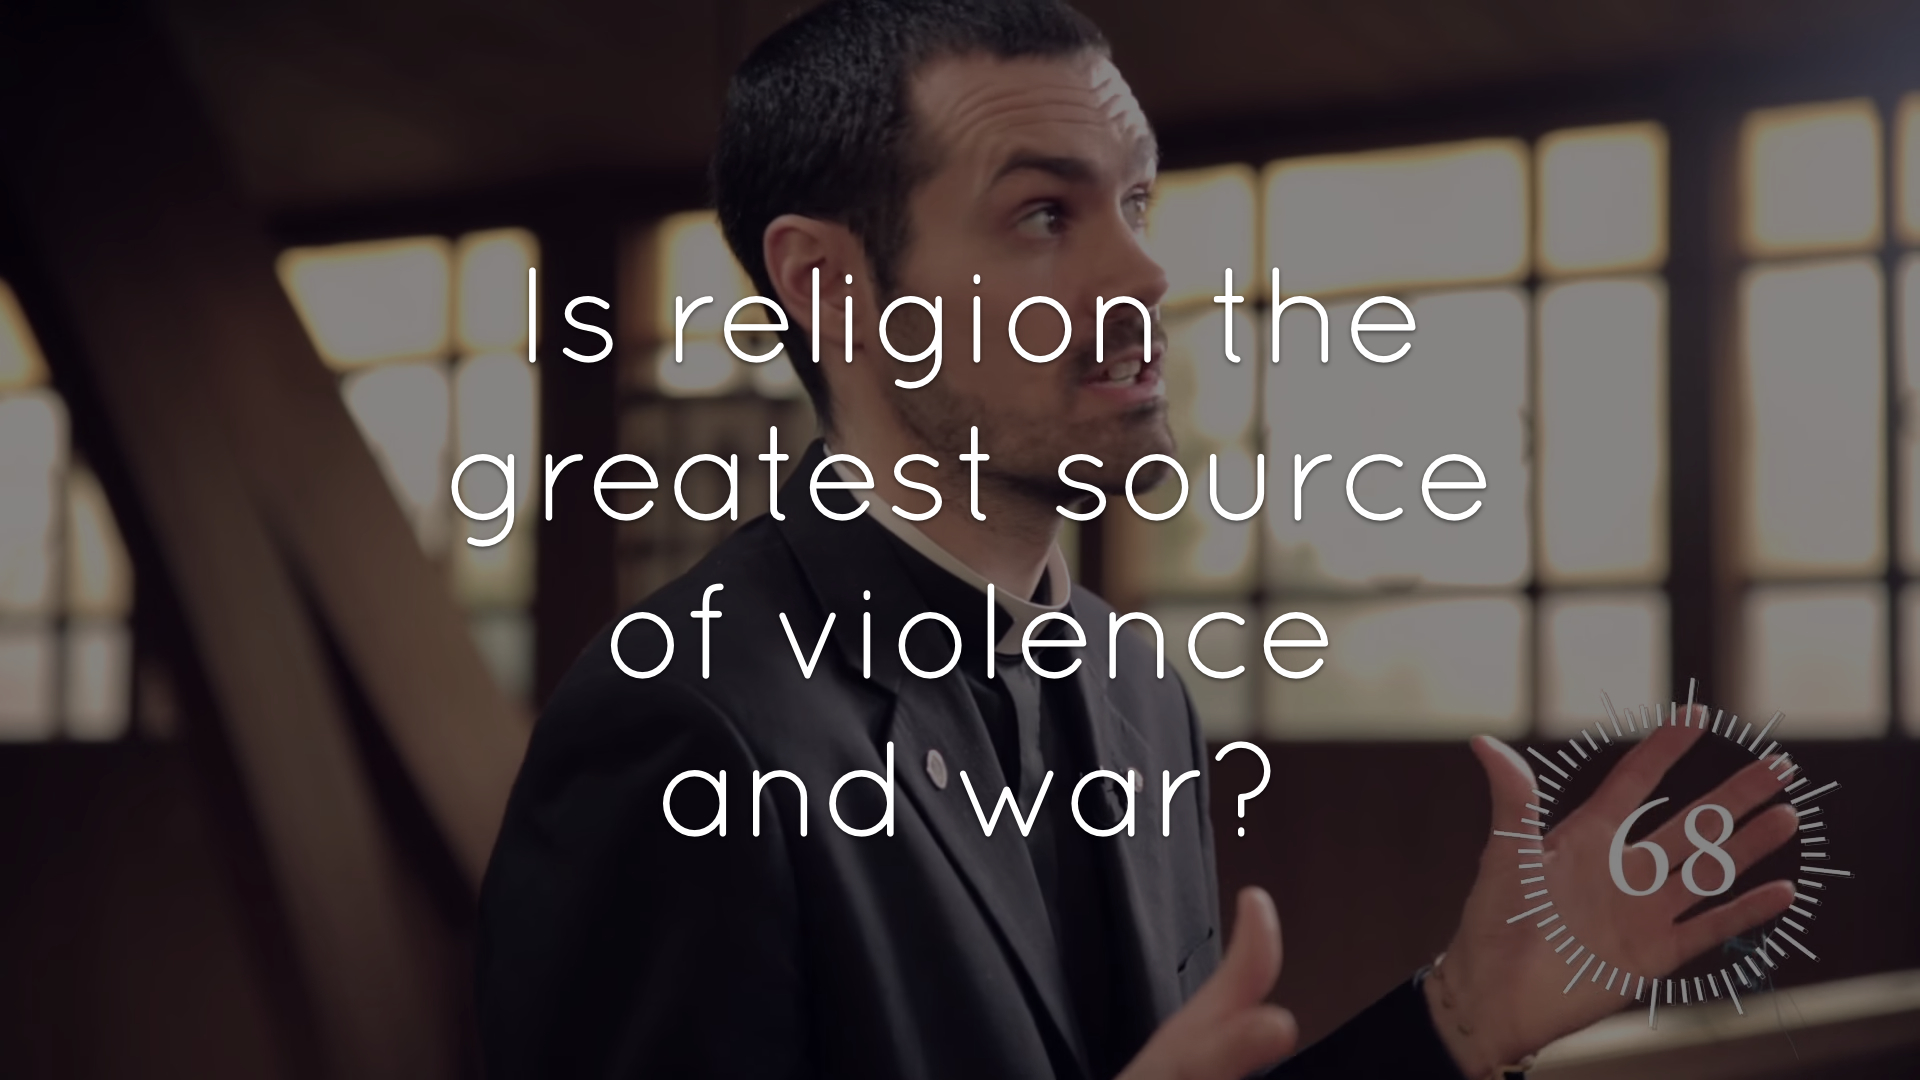 Is religion the greatest source of violence and war?